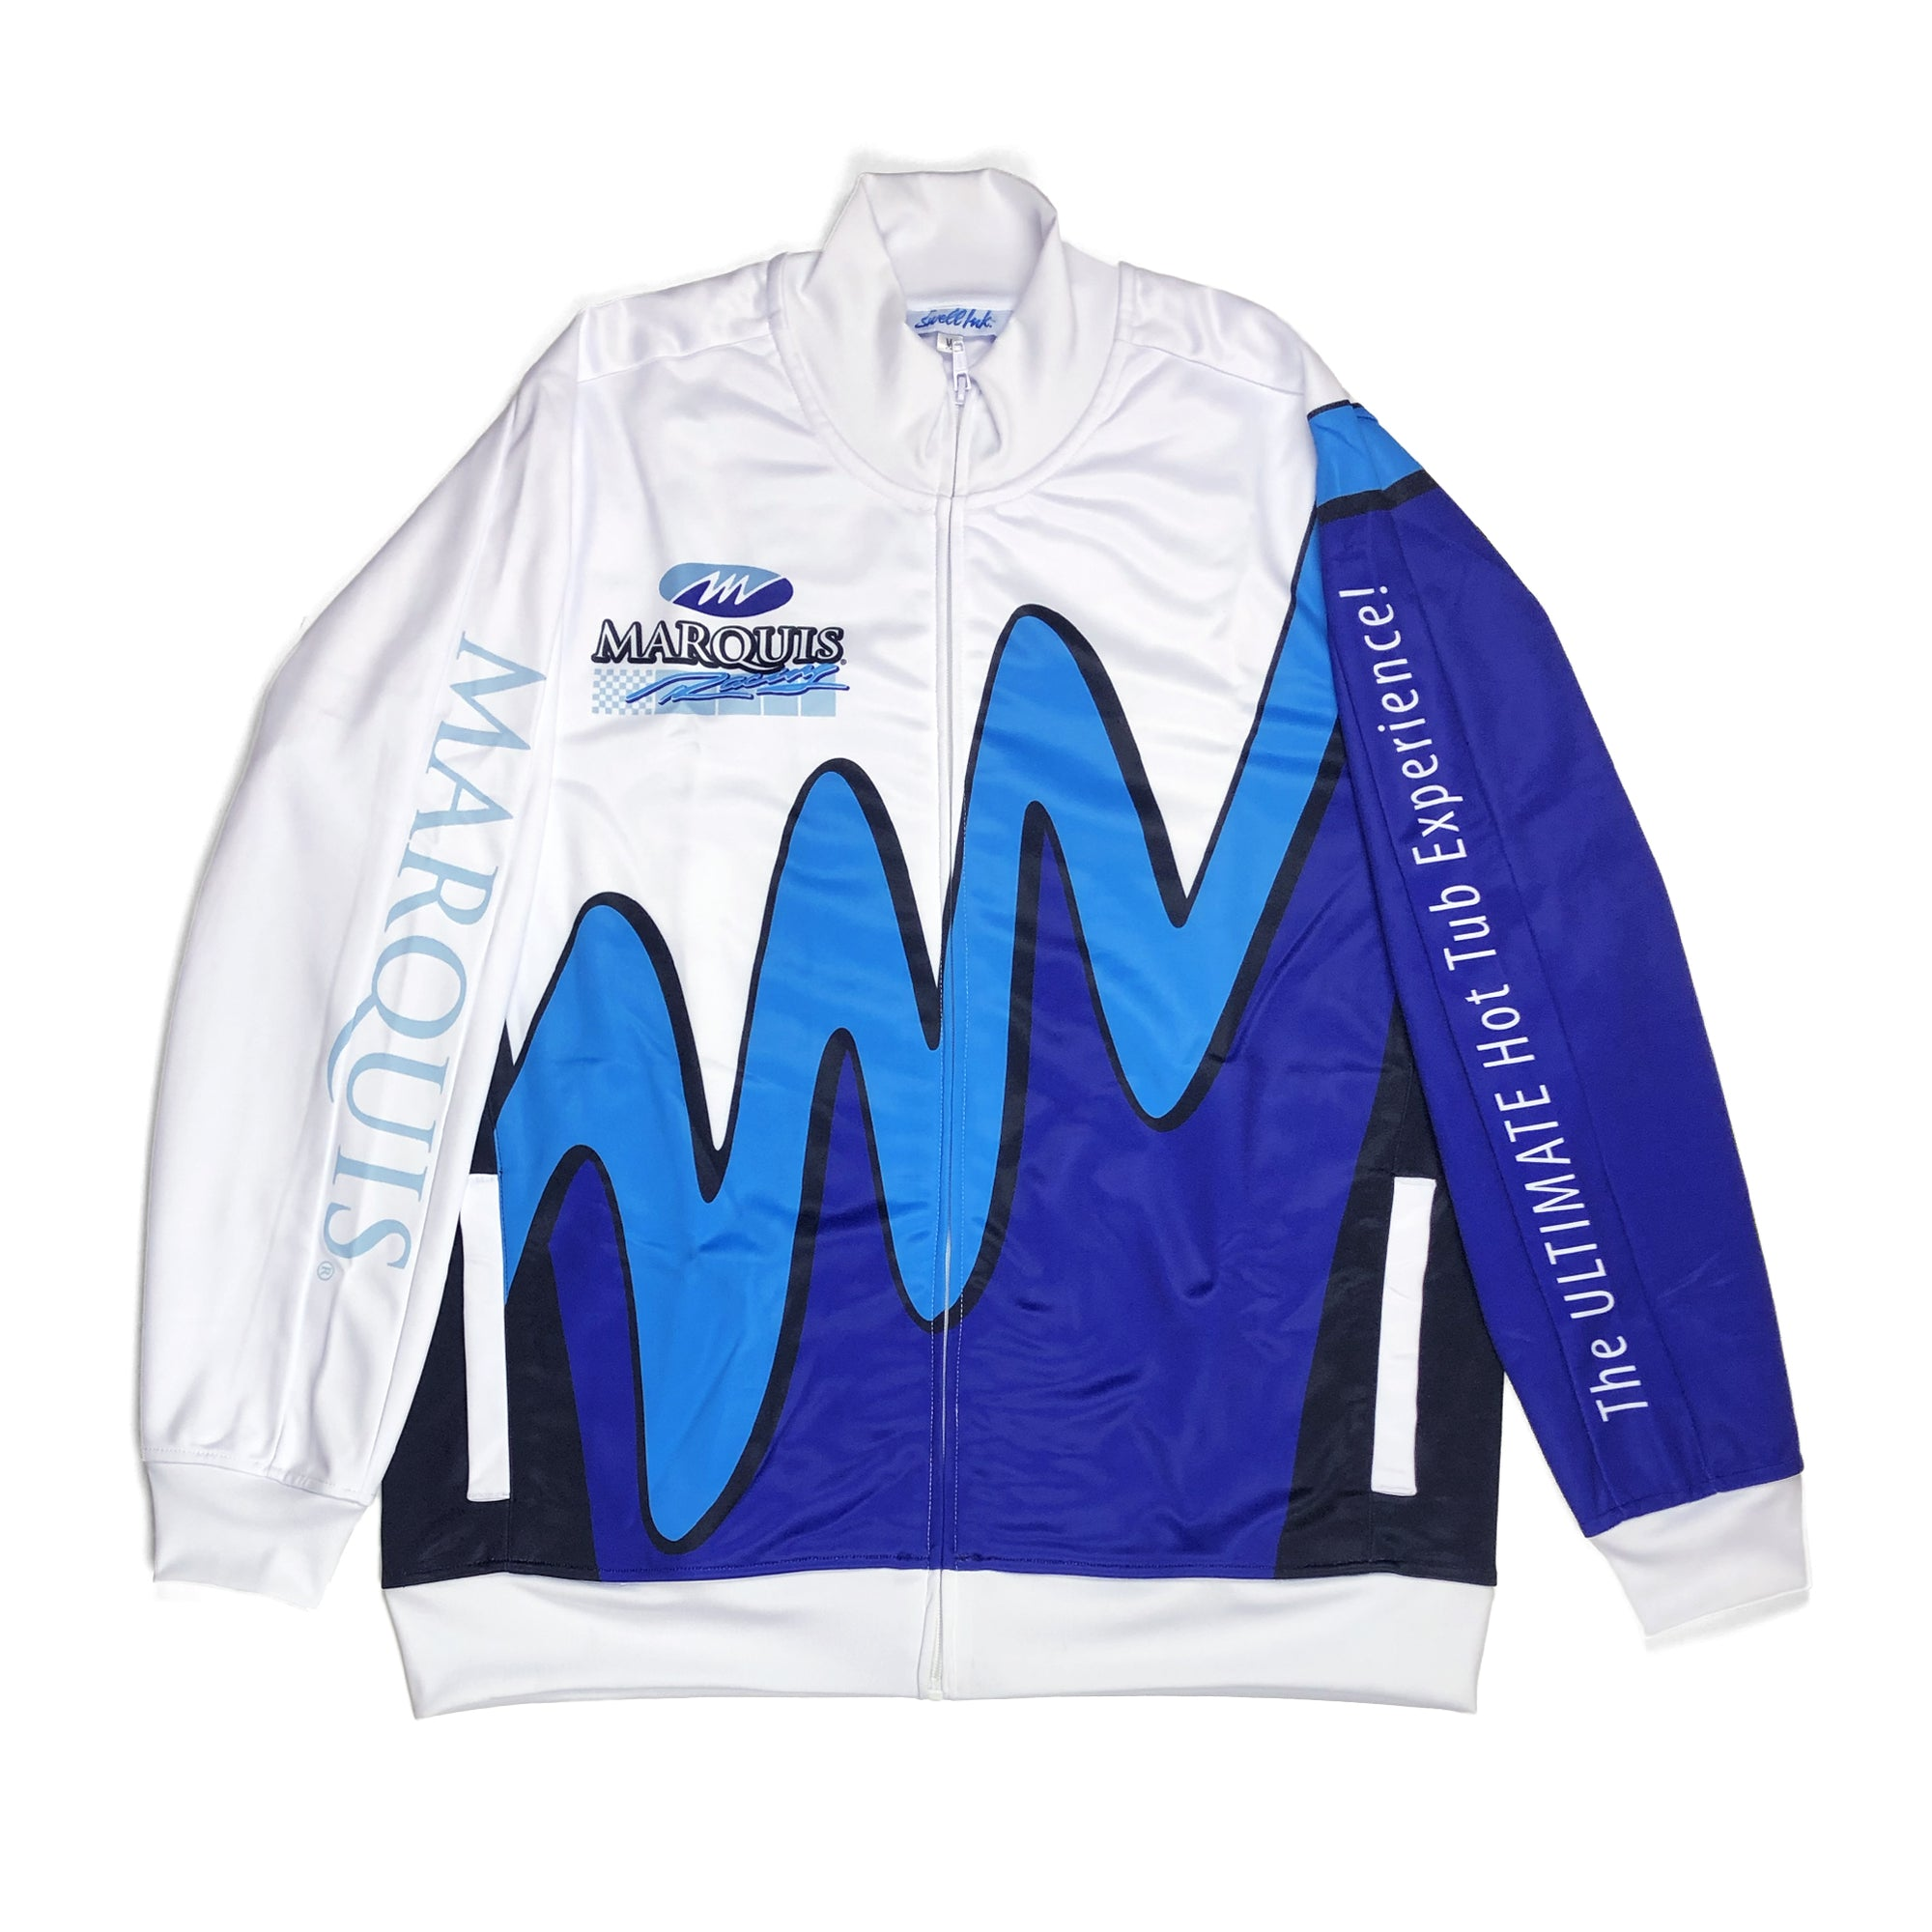 Marquis Racing No. 40 Track Jacket